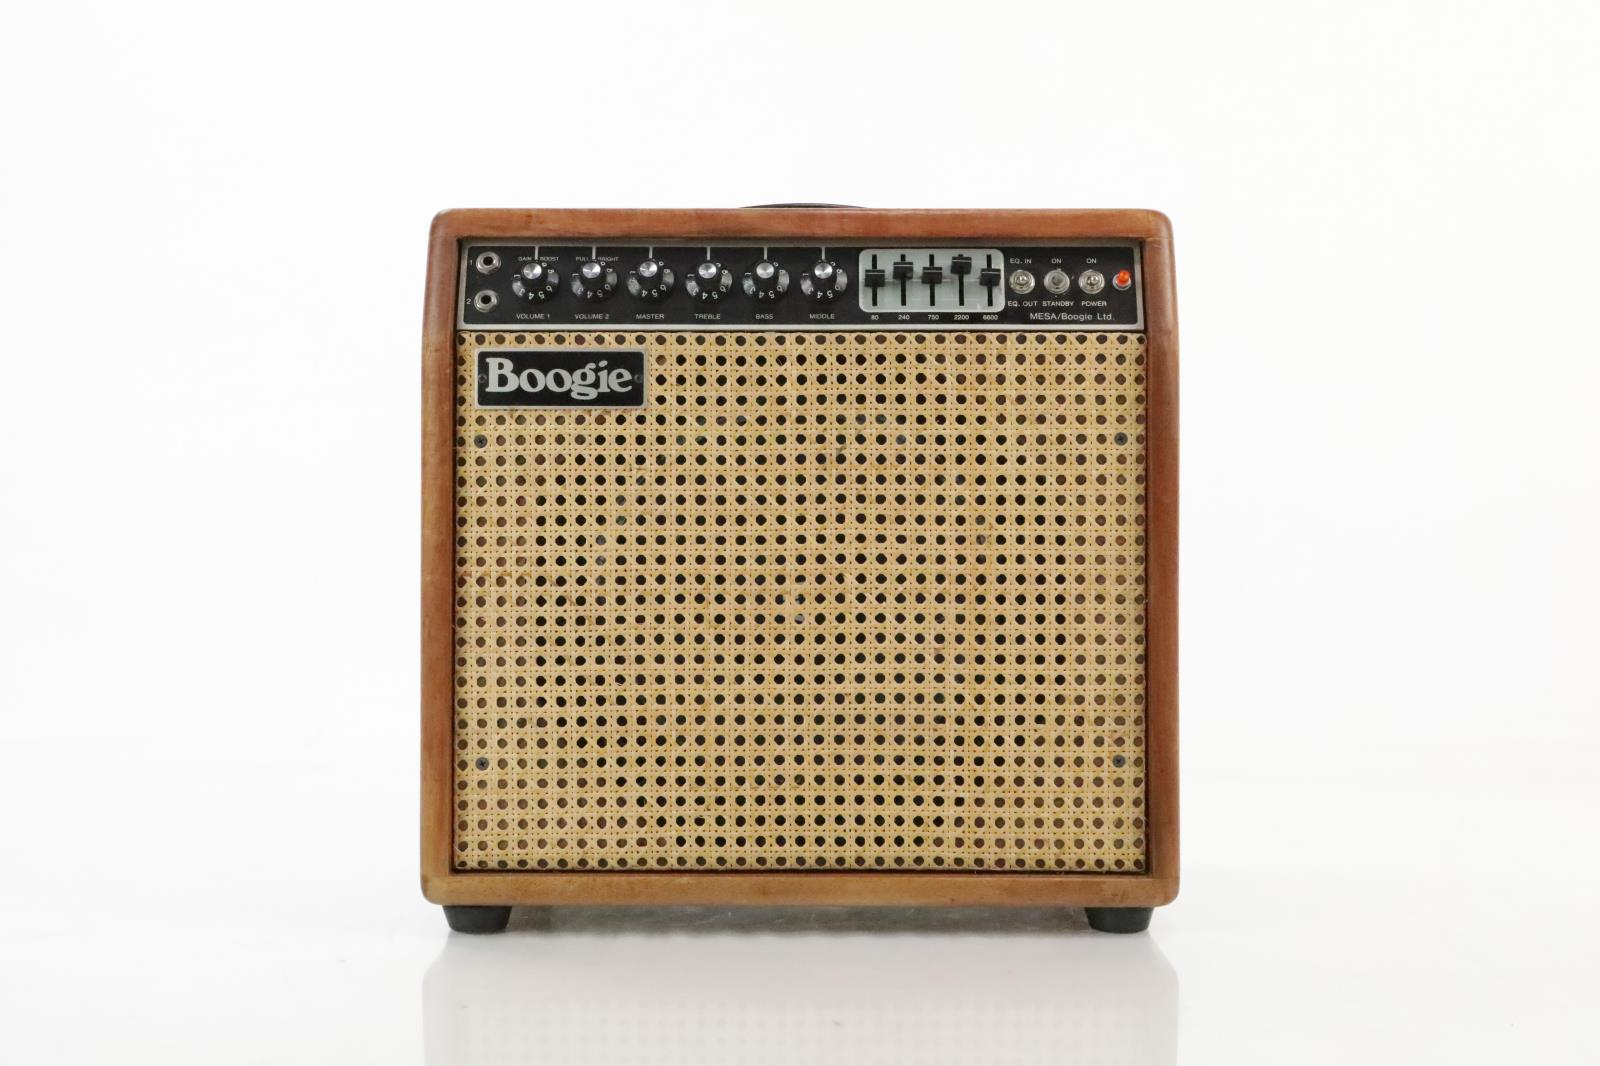 1977 Mesa Boogie Mark 1 Combo Amp w/ ATA Case Wicker Owned by Carlos Rios #33967